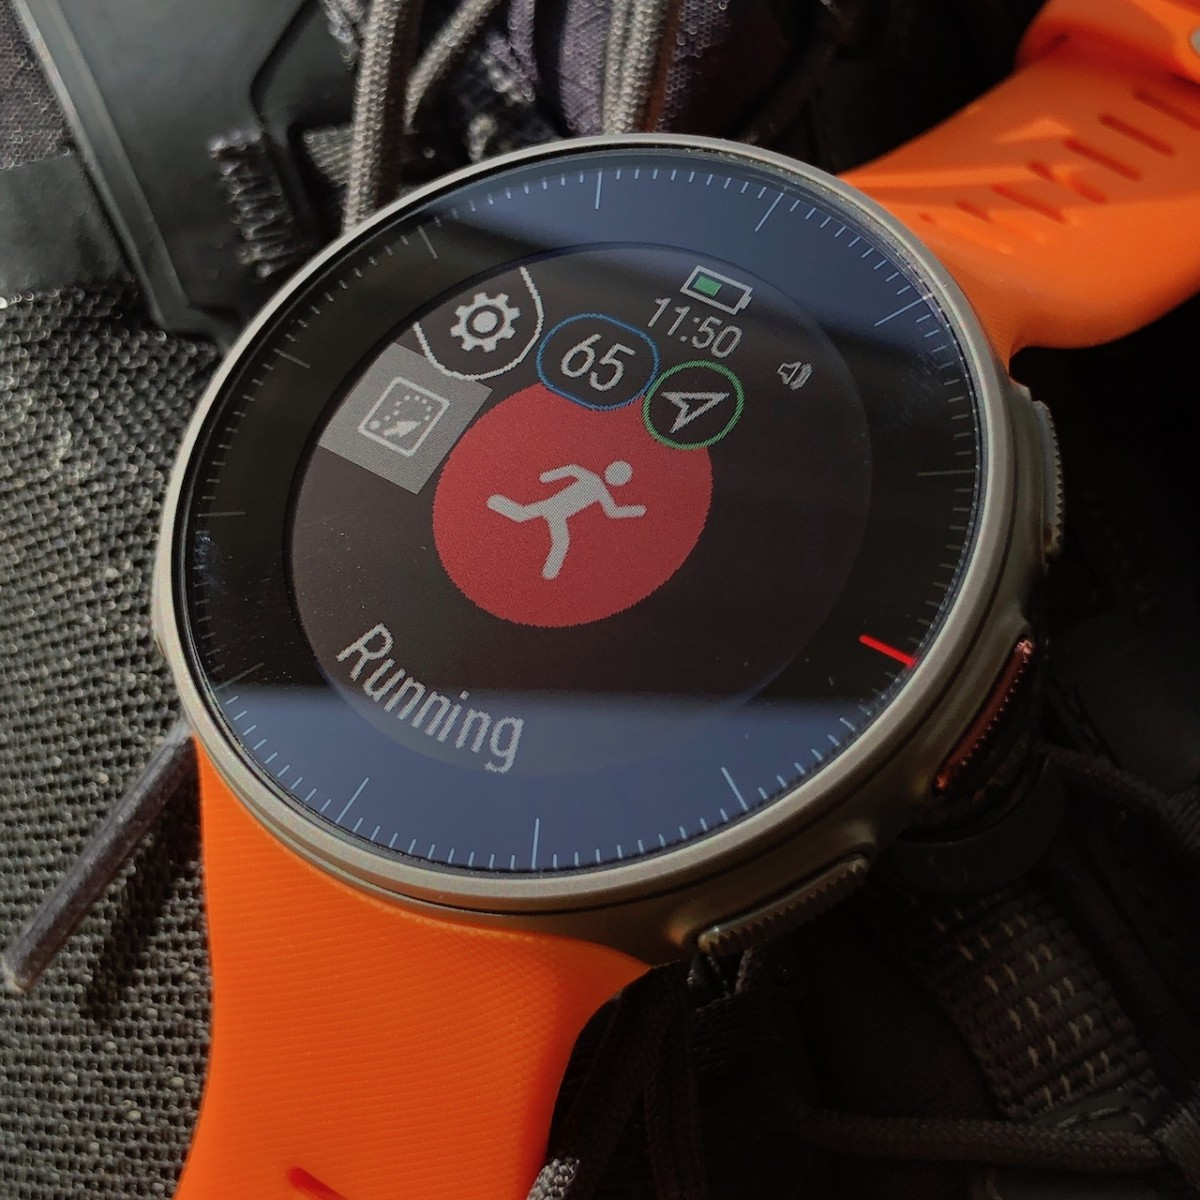 TitaniumGeek IMG 0437 1 Polar Vantage V Review   A Garmin Killer? Cycling Gear Reviews Heart Rate Monitors Running  running Polar HRM garmin cycling apple watch   Image of IMG 0437 1